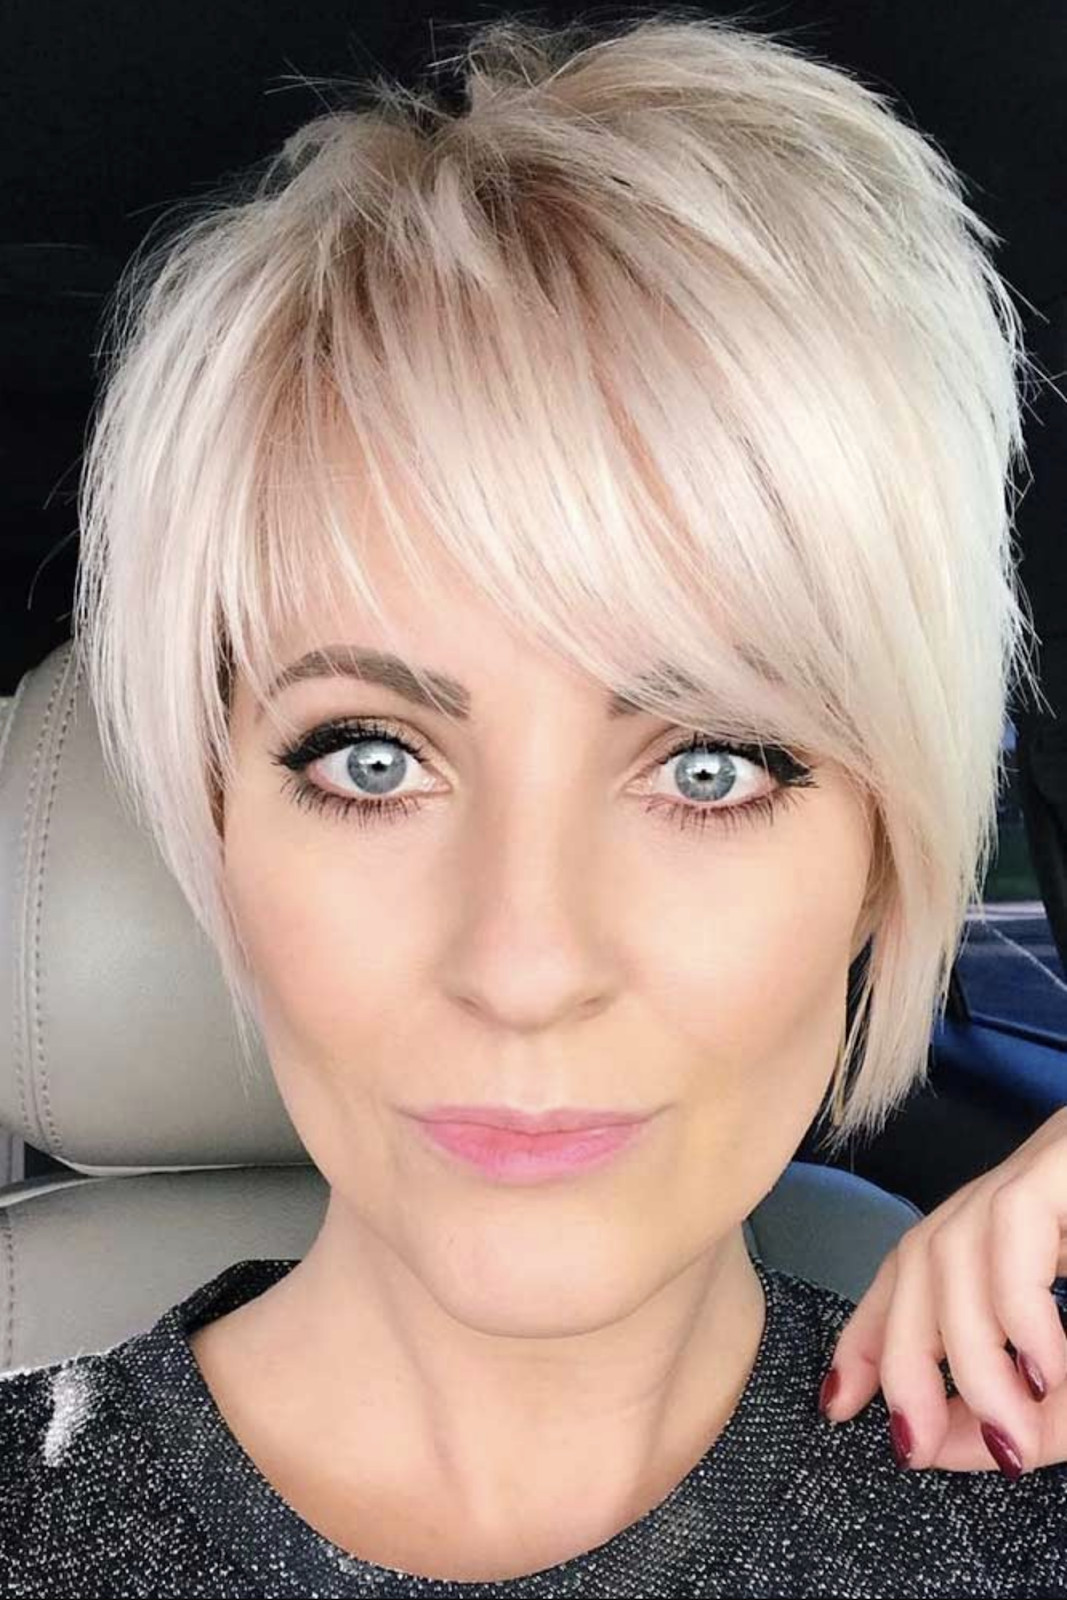 New Hairstyles For 2020 Women  2019 2020 Short Hairstyles for Women Over 50 That Are